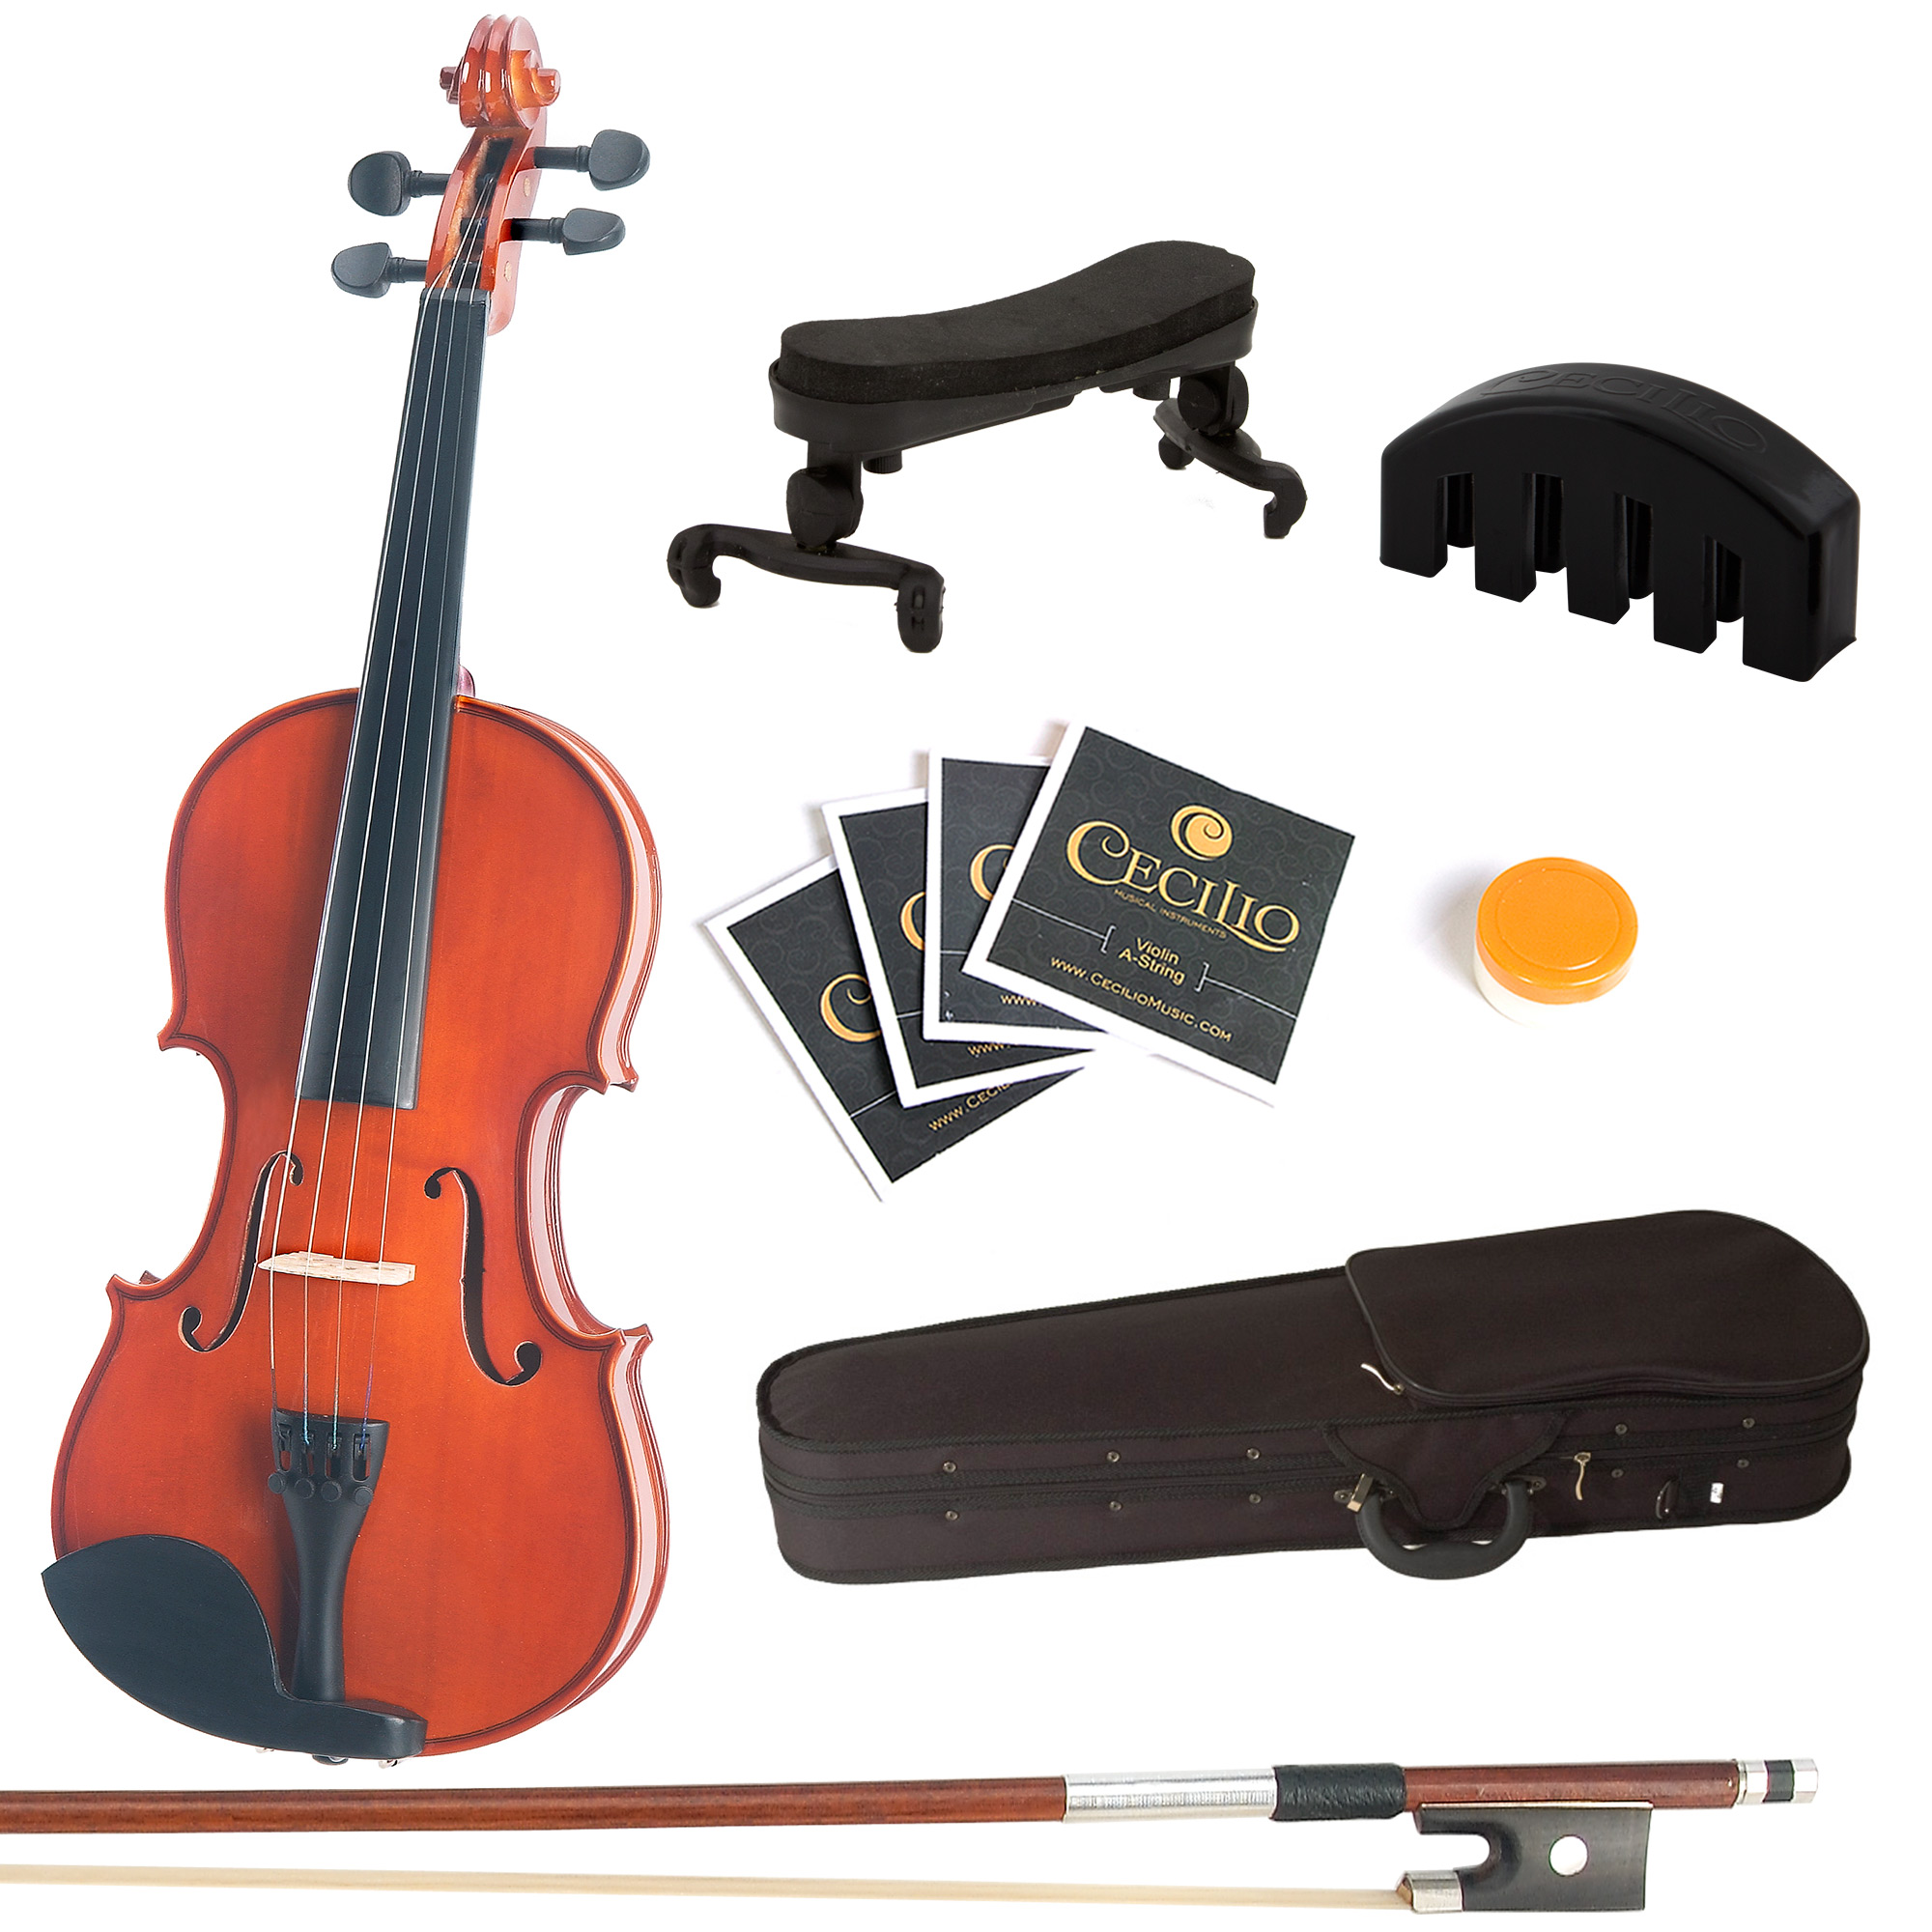 Mendini by Cecilio Full Size 1/2 MV200 Handcrafted Solid Wood Violin Pack with 1 Year Warranty, Violin Mute, Shoulder Rest, Bow, Rosin, Extra Set Strings, 2 Bridges & Case, Natural Varnish